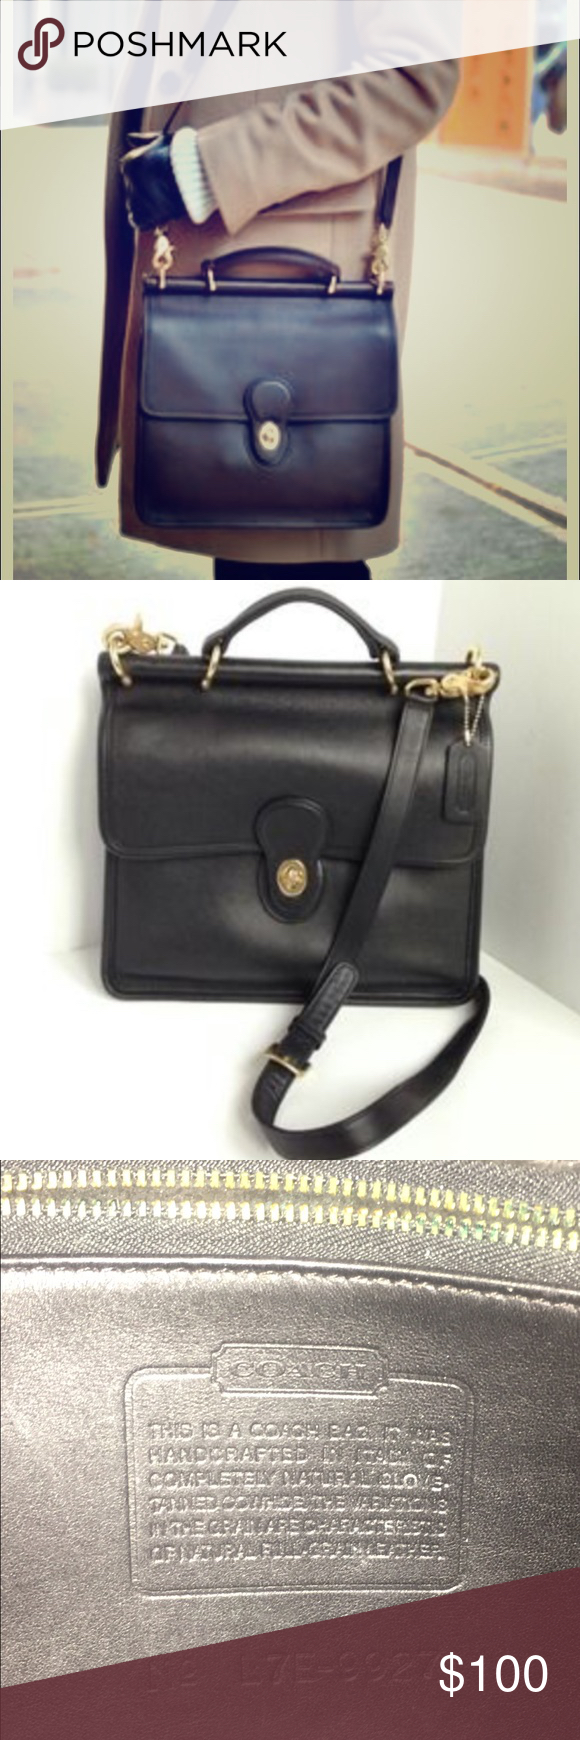 Spotted while shopping on Poshmark  Vintage Coach Willis Black Leather Bag!   poshmark  fashion  shopping  style  Coach  Handbags 1b61cd5ae0